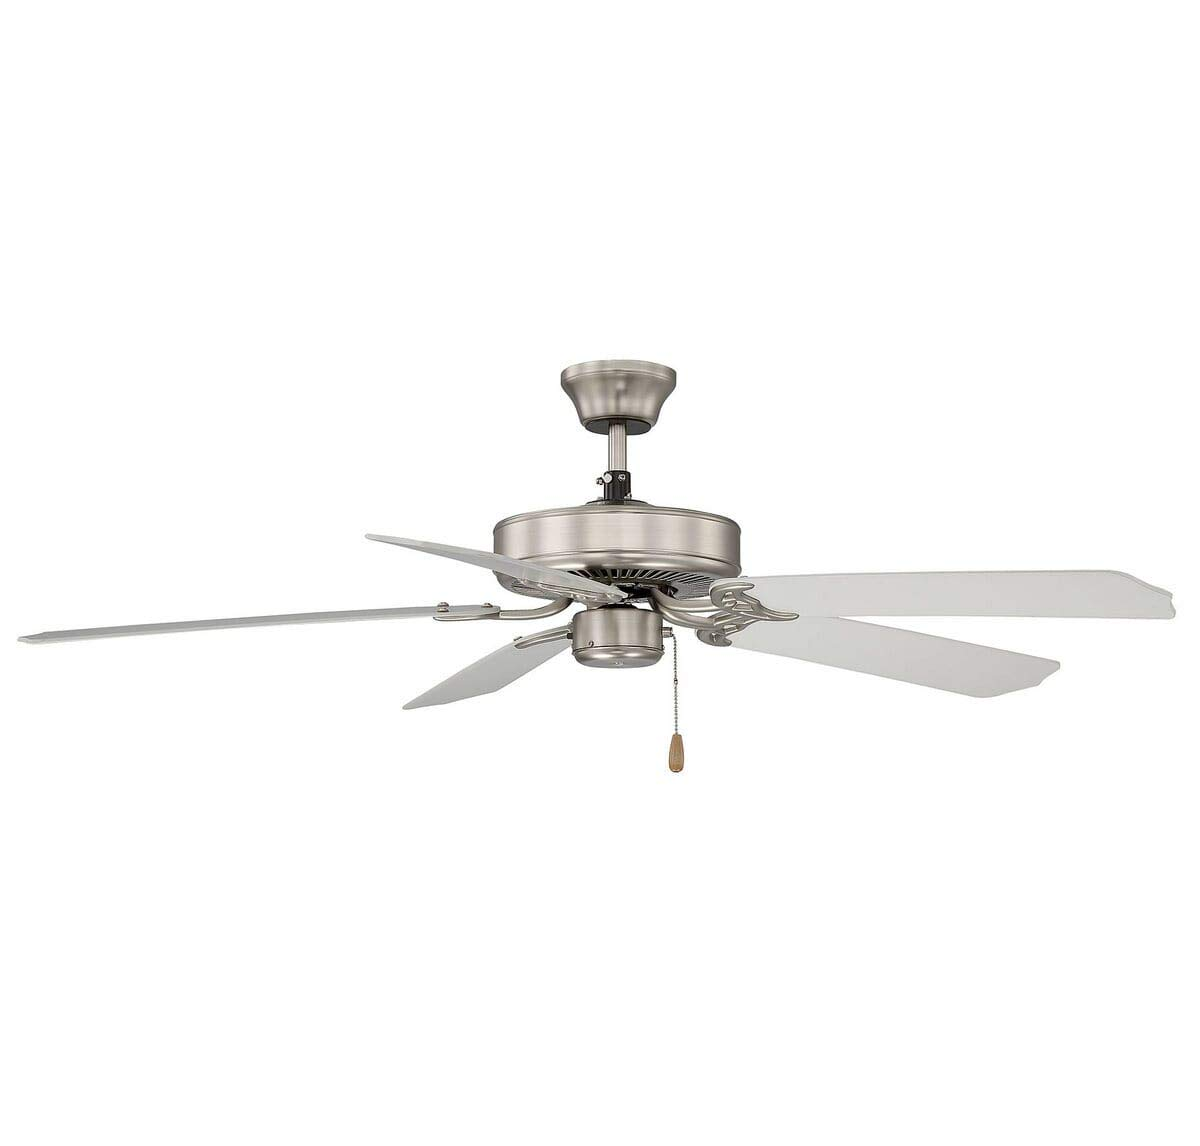 Savoy House 52-FAN-5W-SN Downrod Mount, 5 White Blades Ceiling fan, Satin Nickel